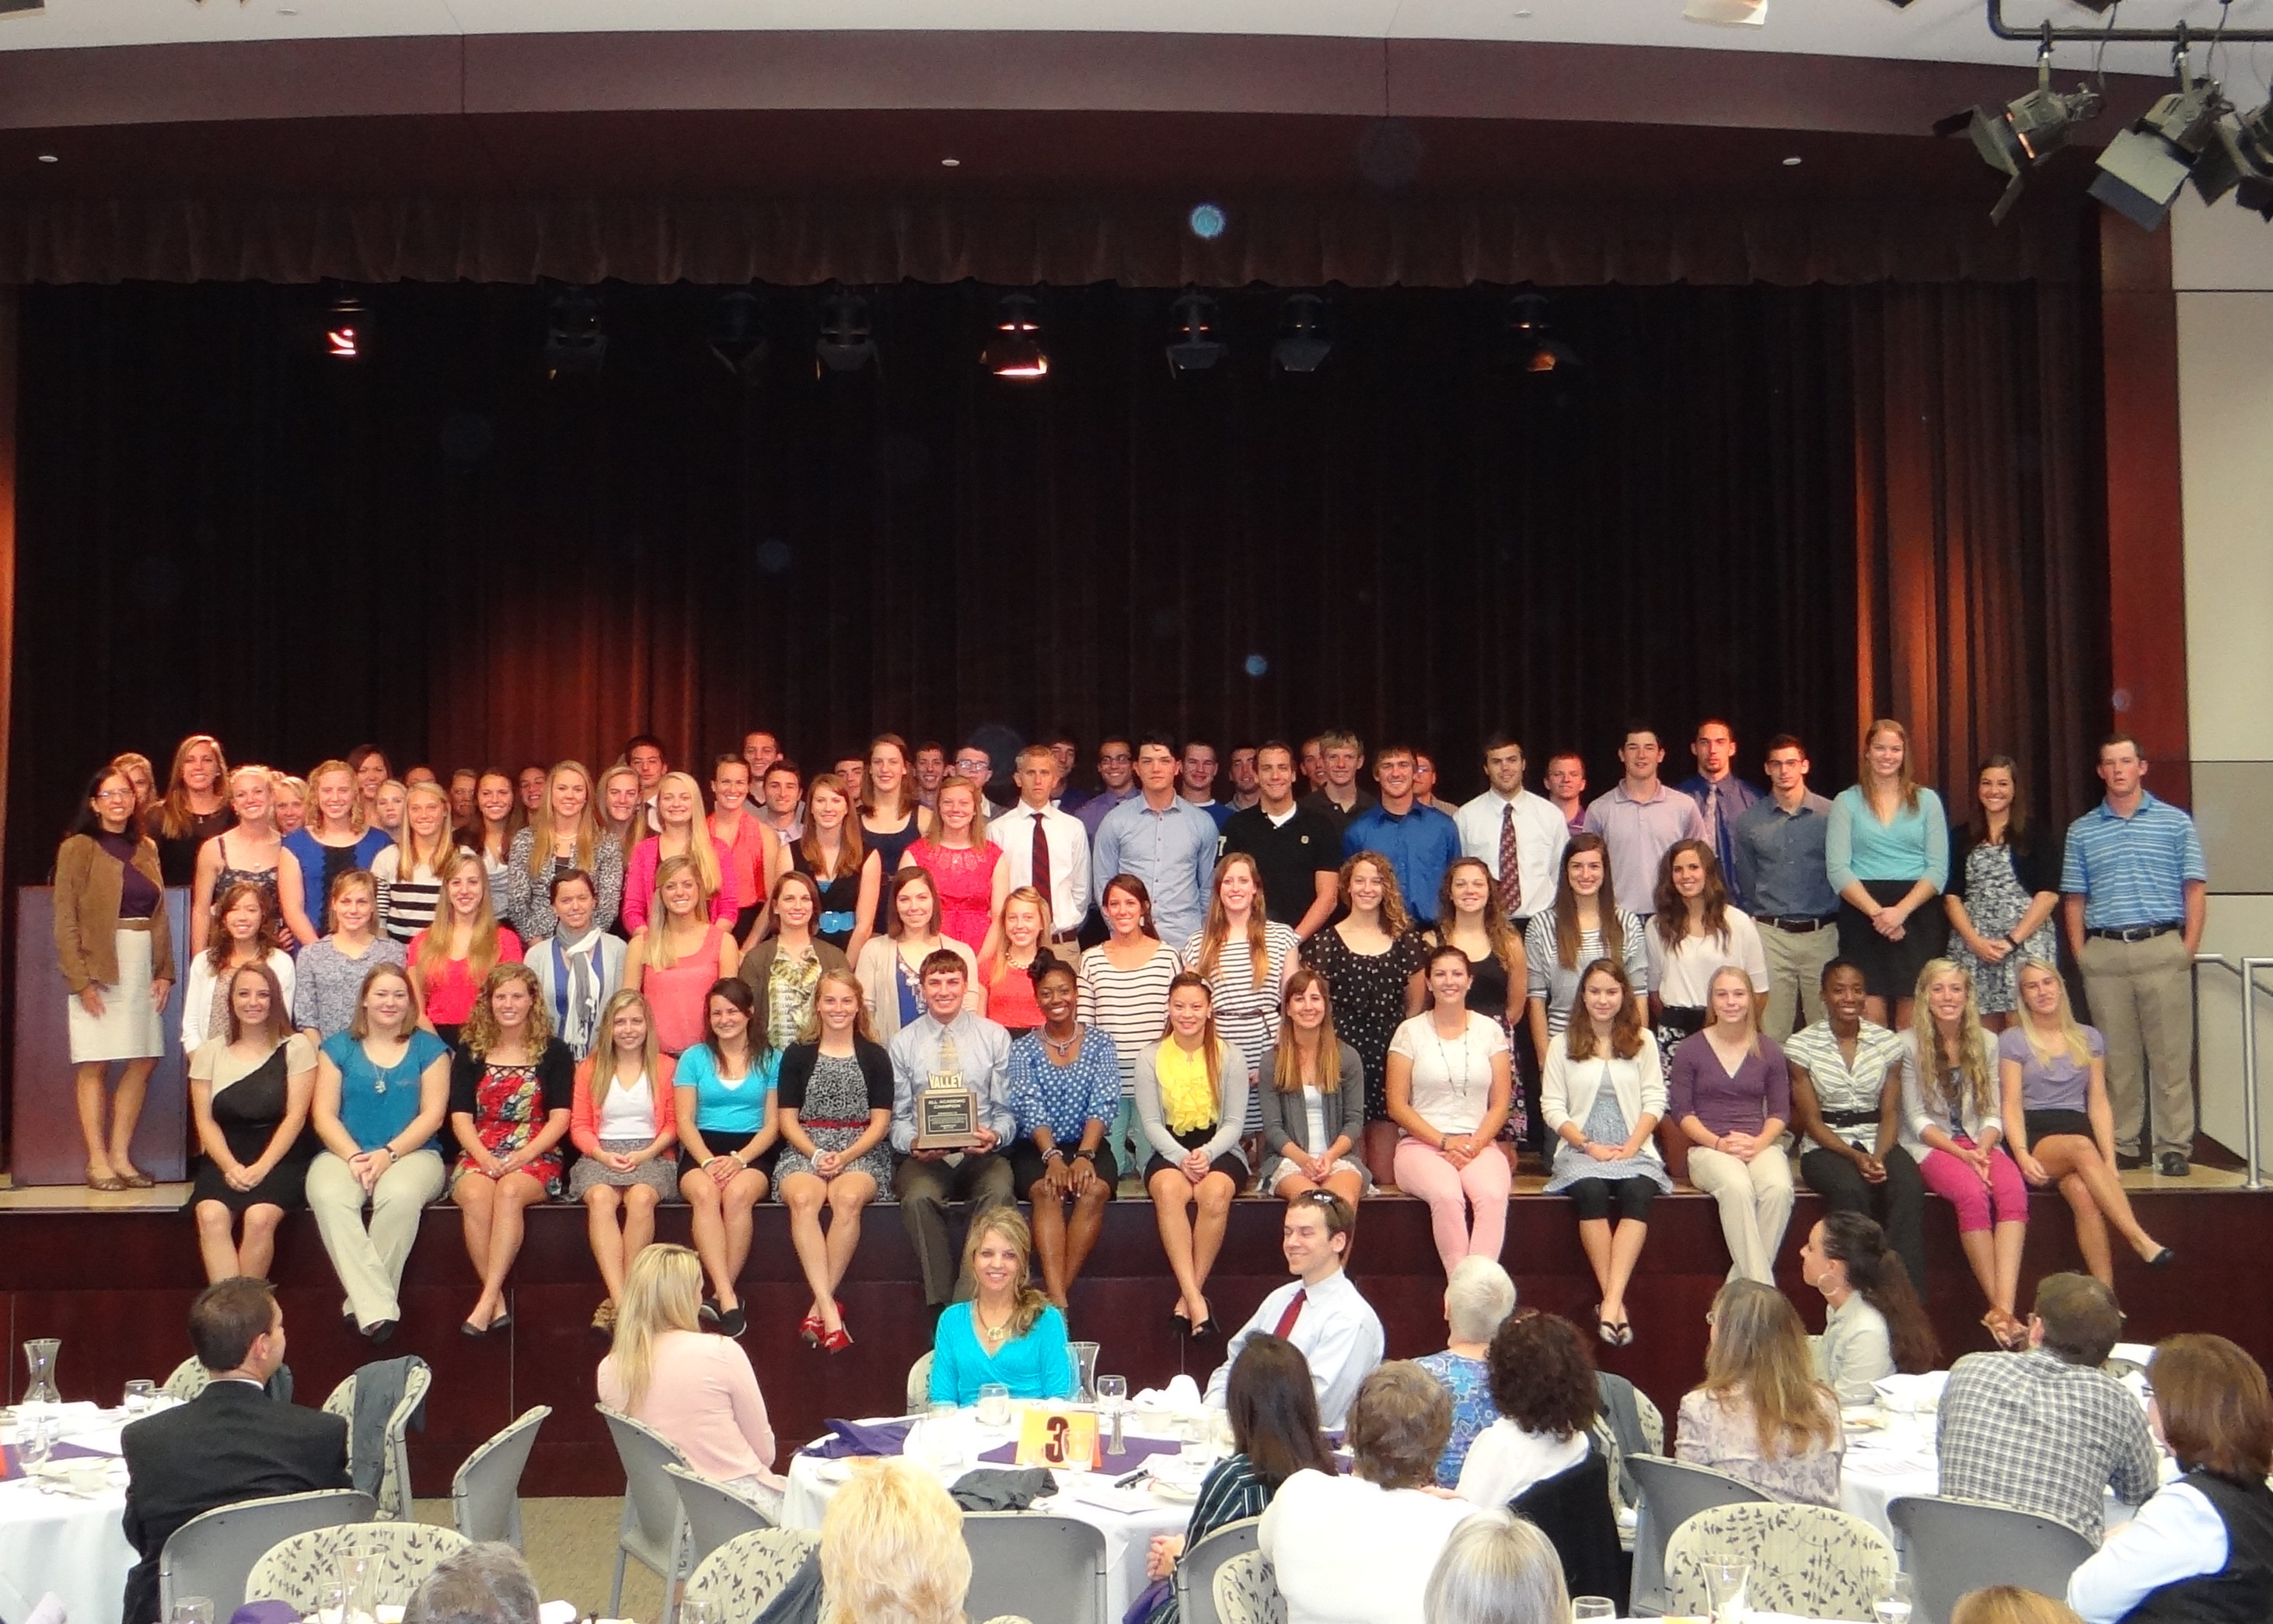 Student athlete group photo